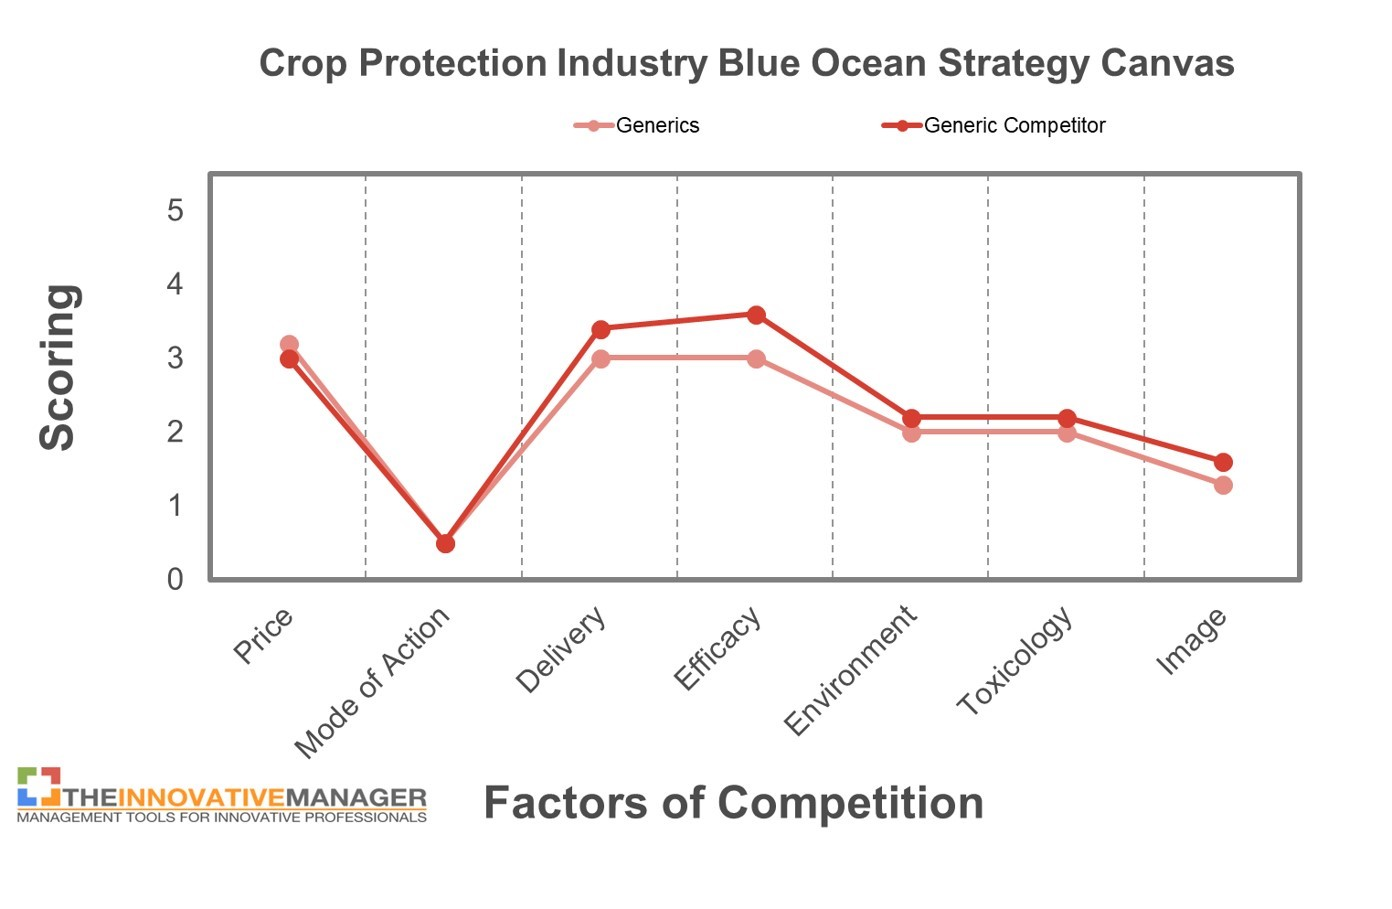 Figure 5: Strategy Canvas, generic crop protection competitor, compared to the generic crop protection industry (adapted from Kim & Mauborgne, authors/creators of Blue Ocean Strategy).